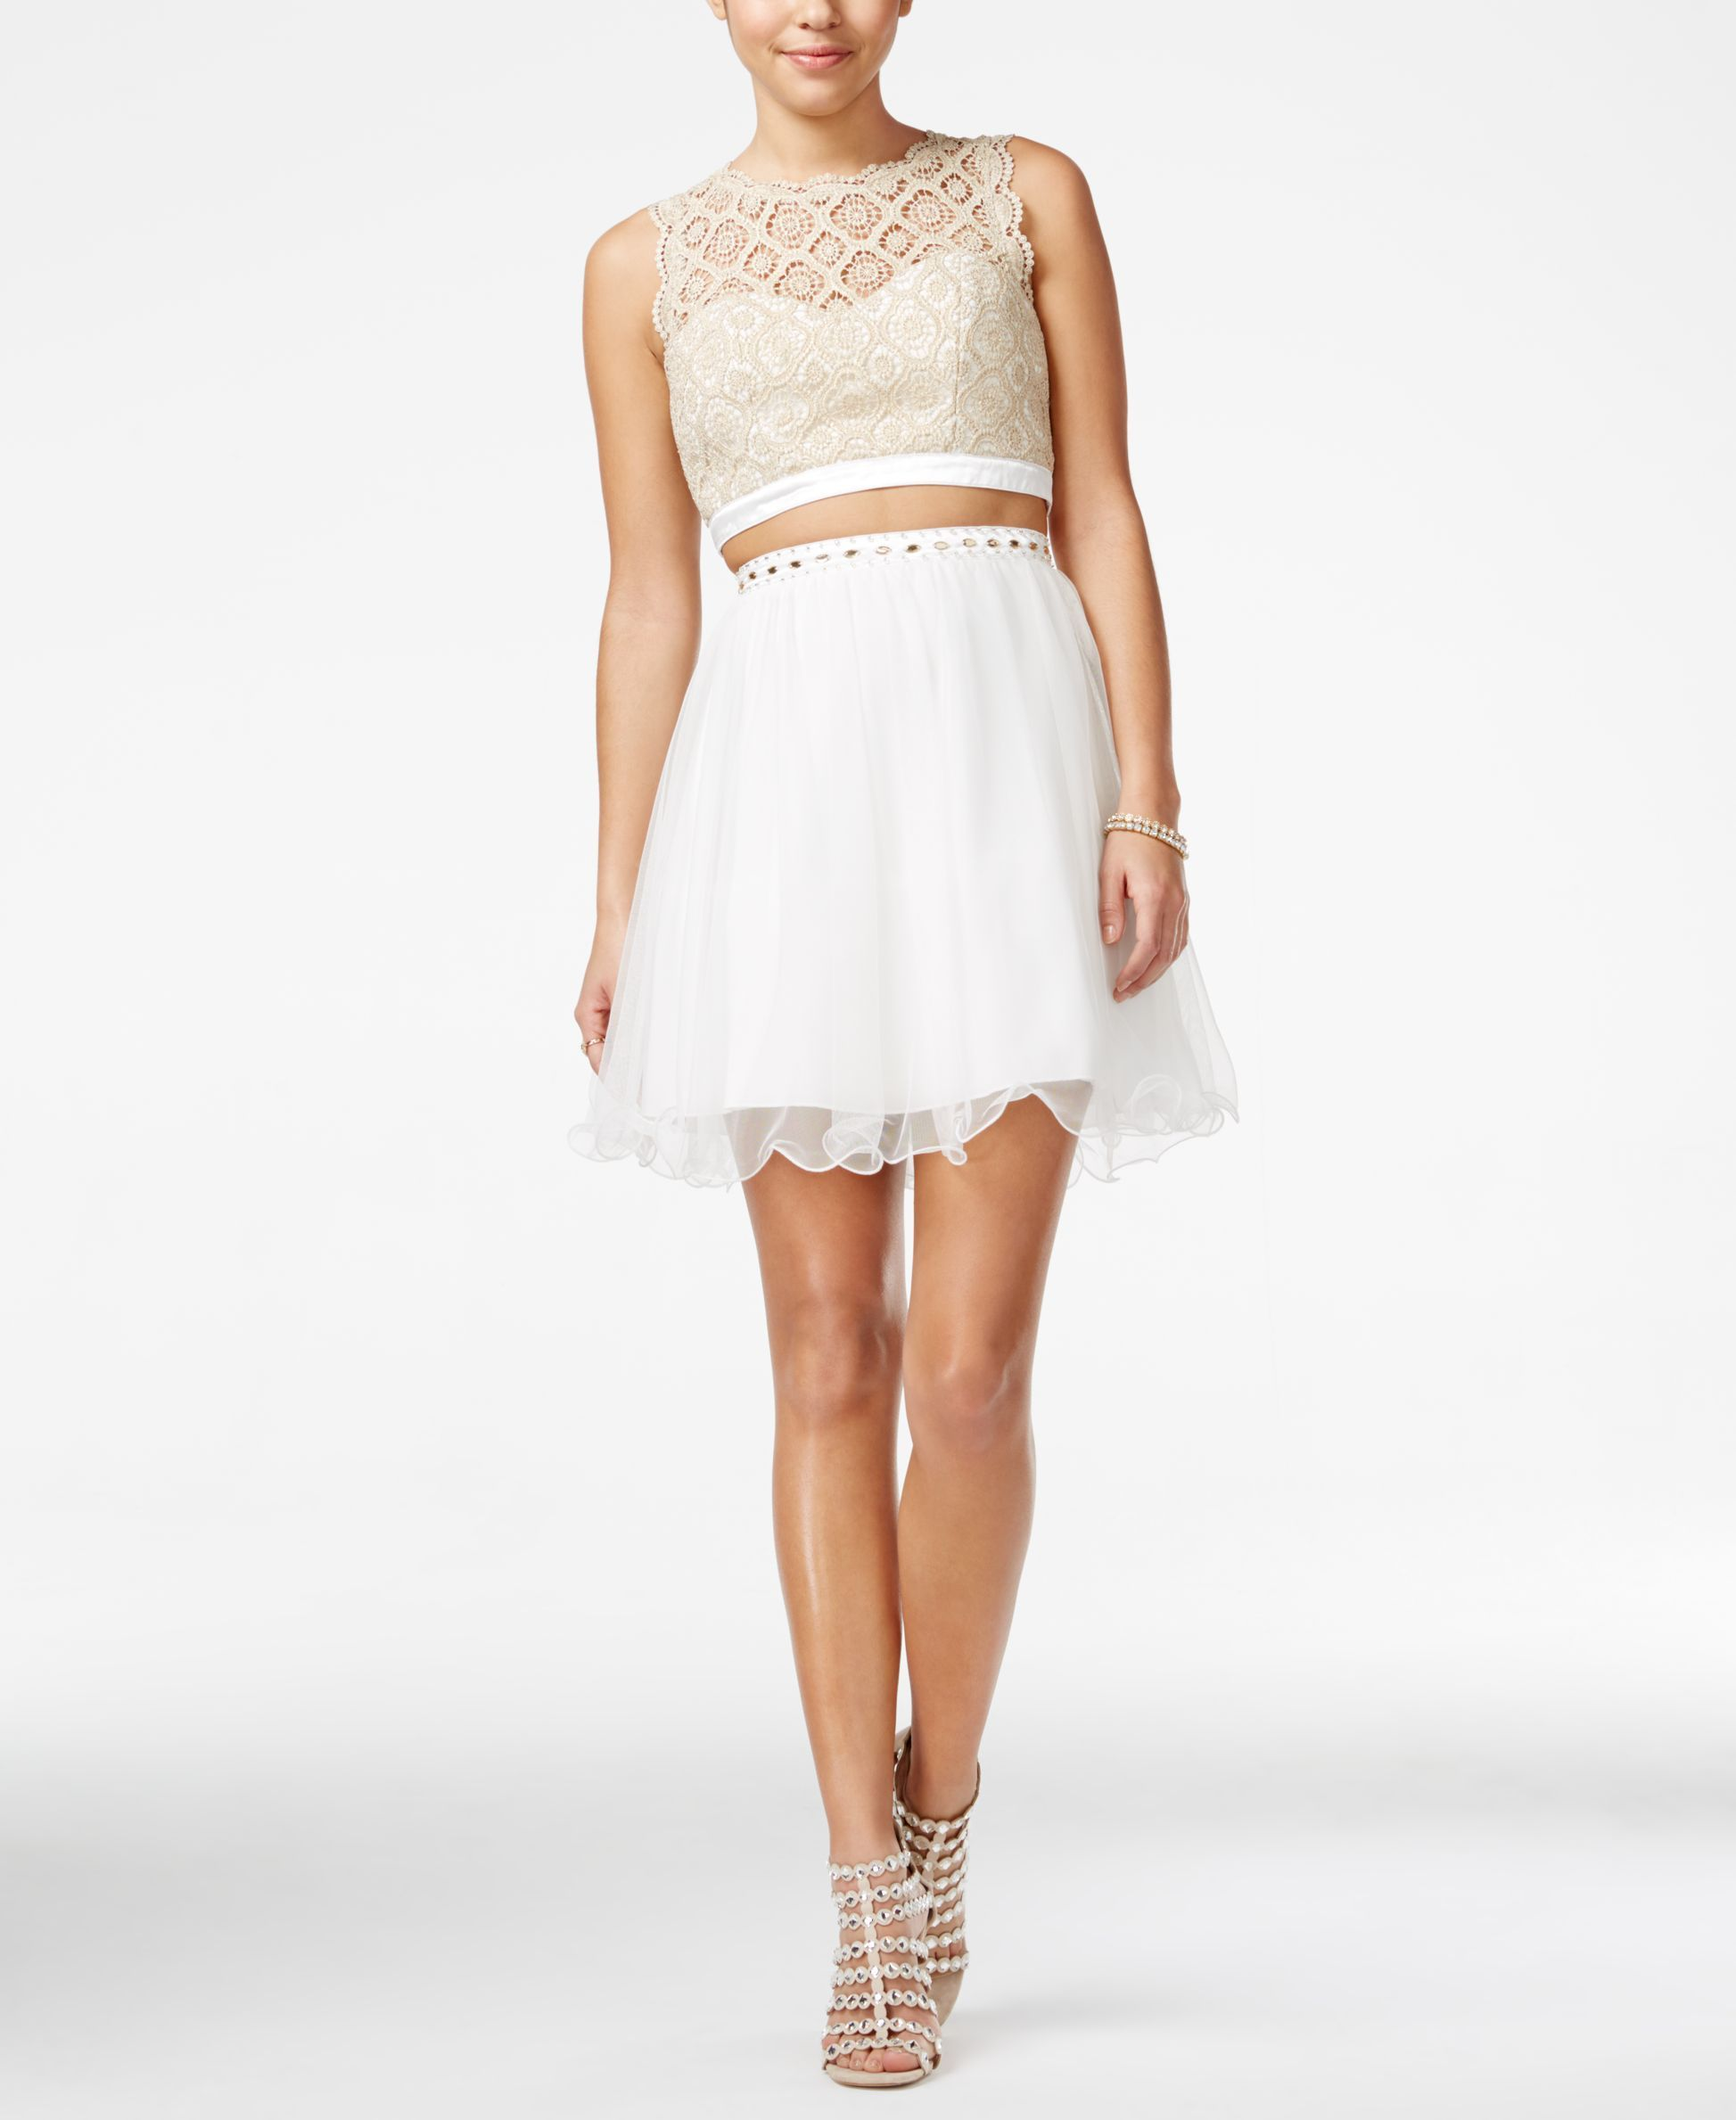 Sequin Hearts Juniors Embellished Lace Two Piece Dress Juniors Dresses Macy S Two Piece Homecoming Dress Cocktail Dress Lace White Lace Cocktail Dress [ 2378 x 1947 Pixel ]